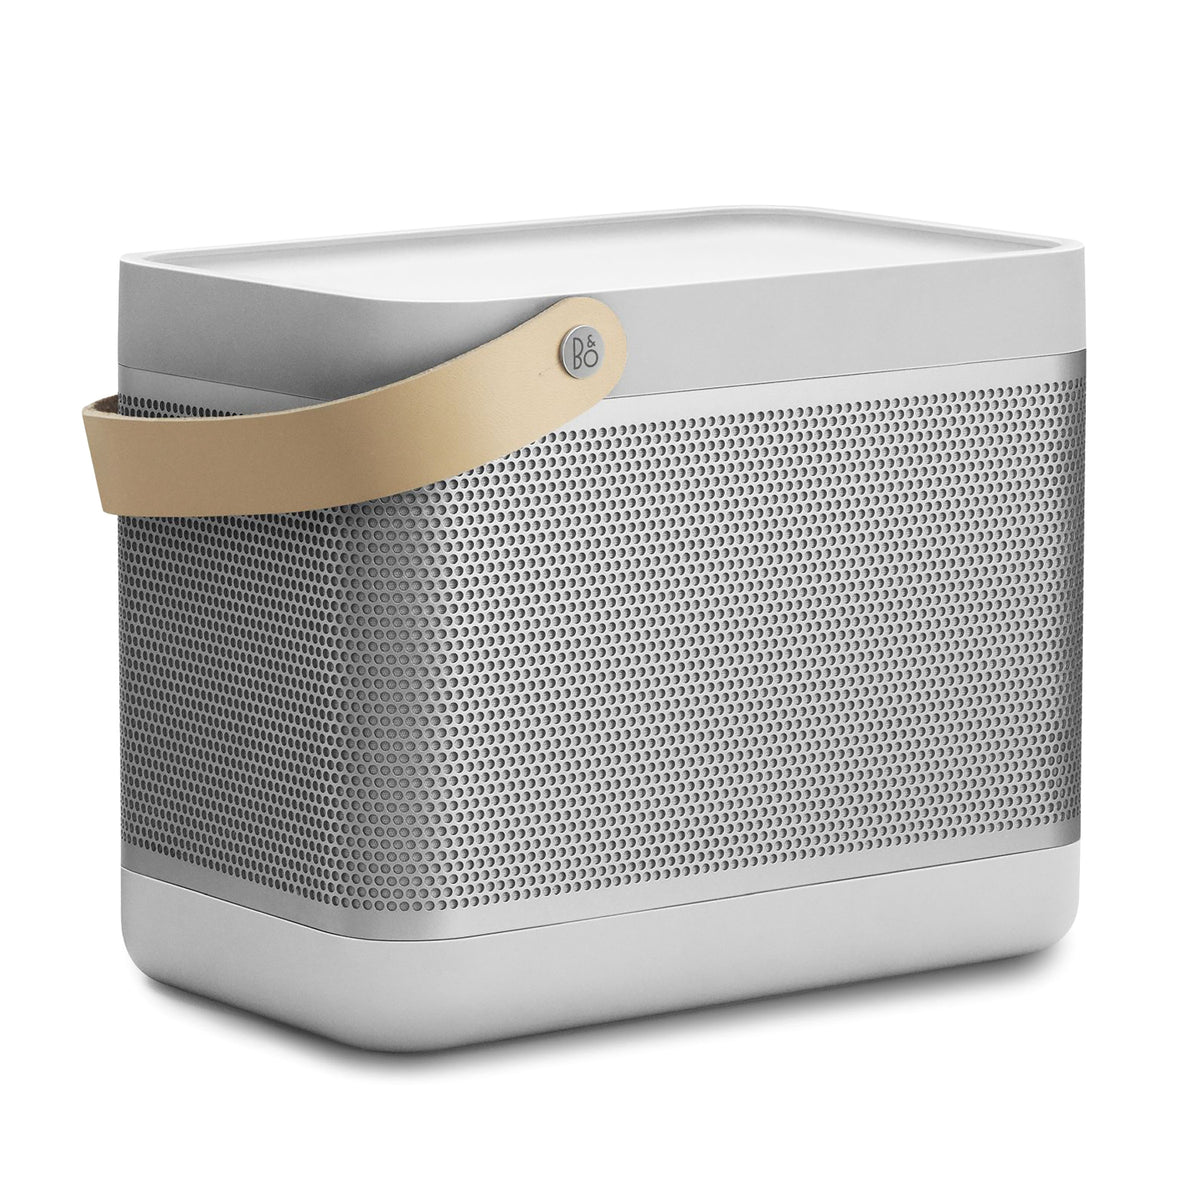 B&O Play: Beolit 17 Active Portable Bluetooth Speaker - Natural